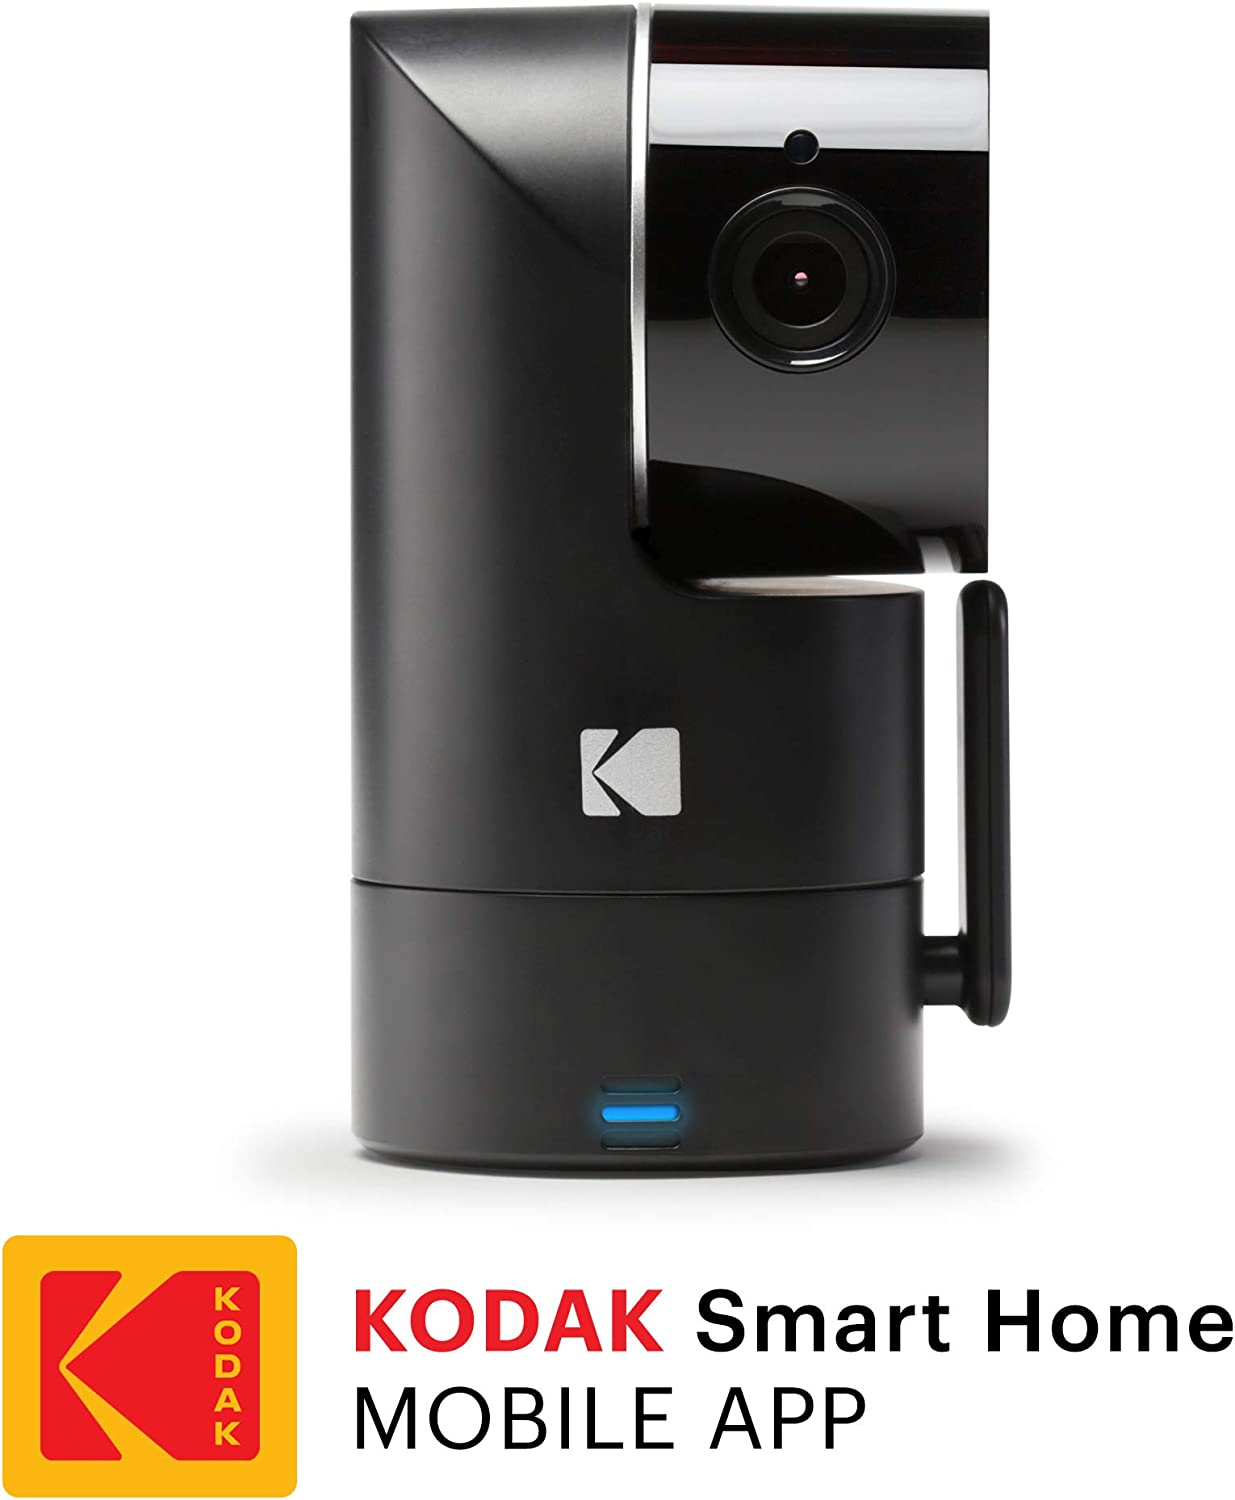 KODAK Cherish F685 Home Security Camera with Mobile App – Full-HD Wireless Security Camera System with Infrared Night-Vision, Battery, Tilt, Pan, Zoom 120deg View – Surveillance Camera, WiFi Camera